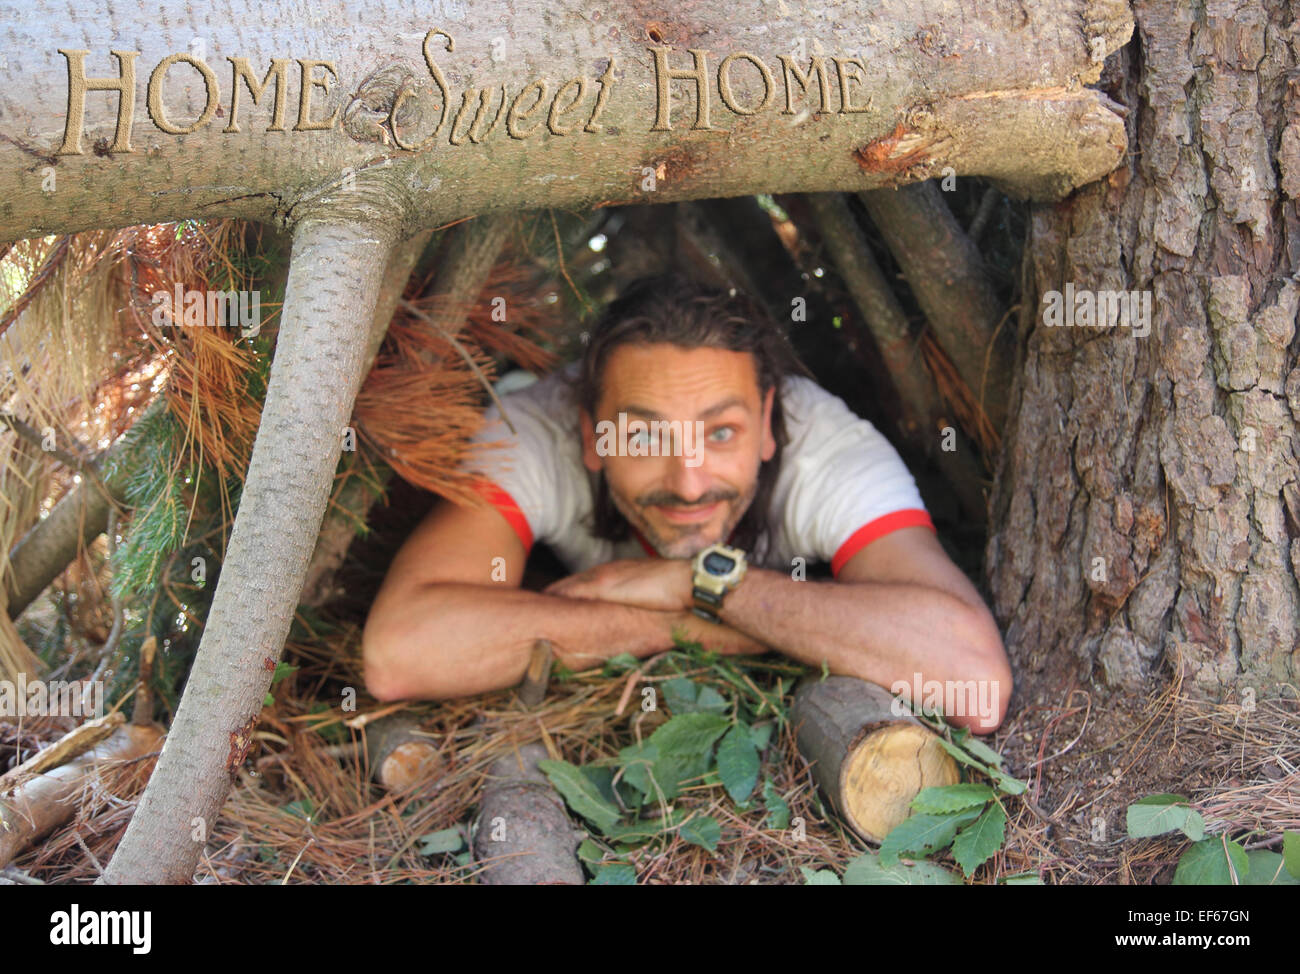 smiling out of focus man in the wild under Home sweet Home sign - Stock Image